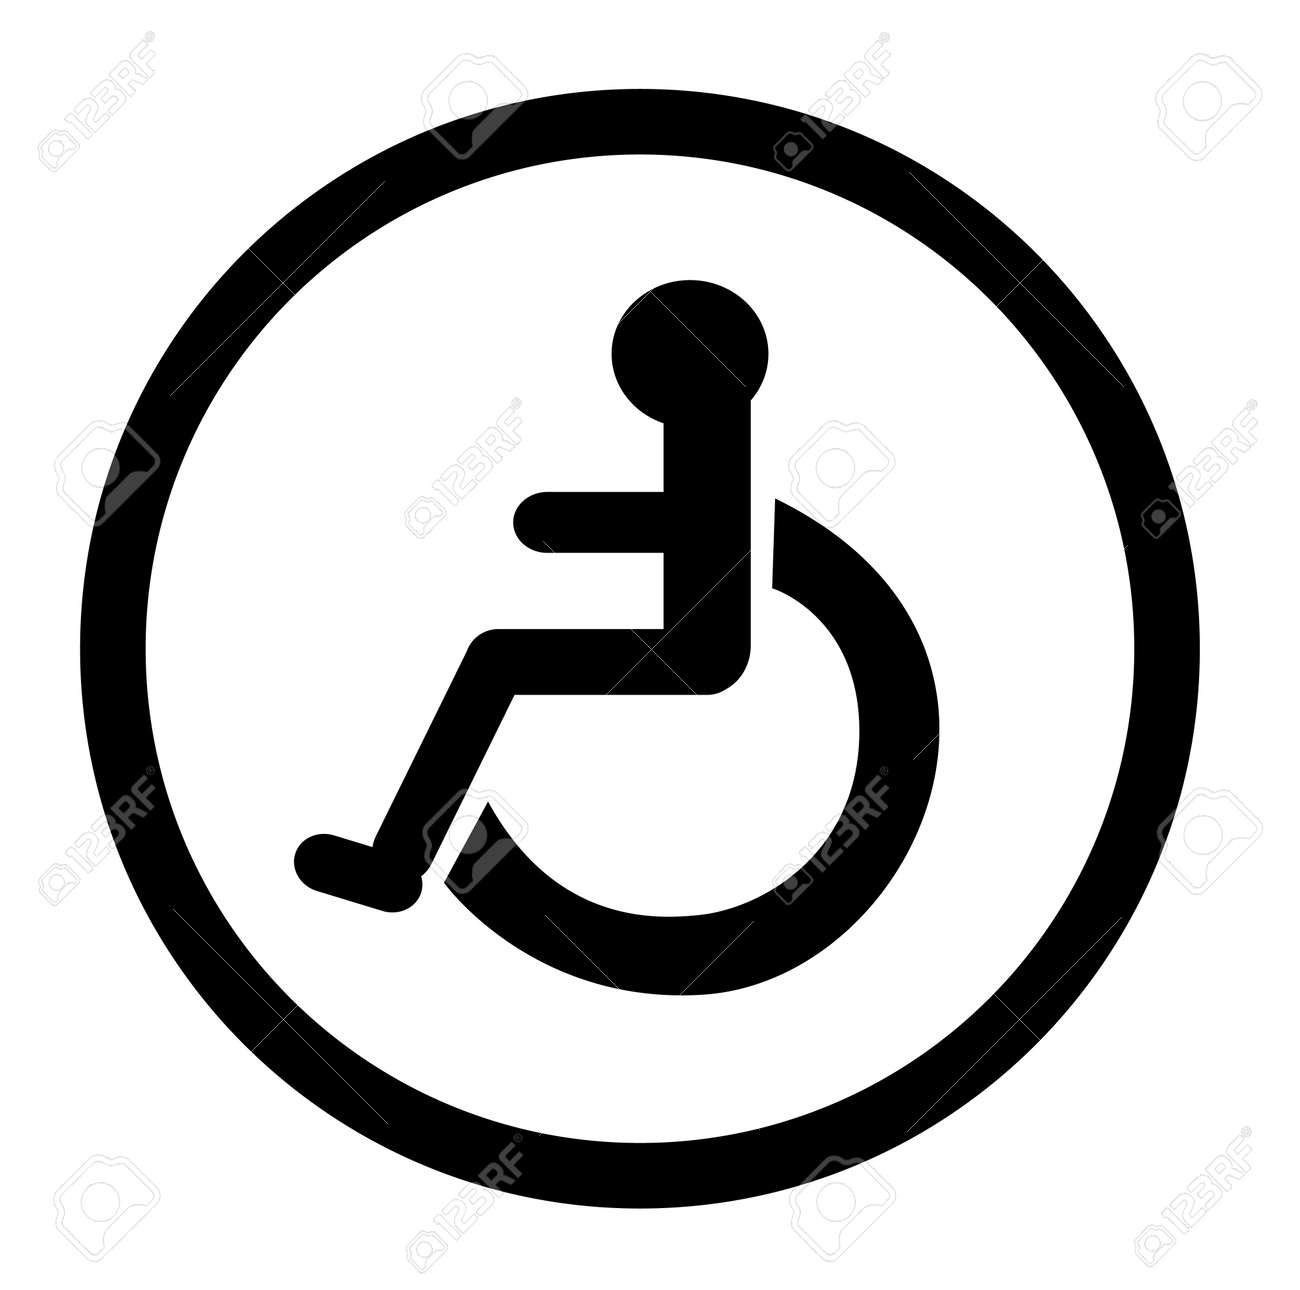 Bathroom For Persons With Disabilities Disabled Toilet Signs Stock Vector